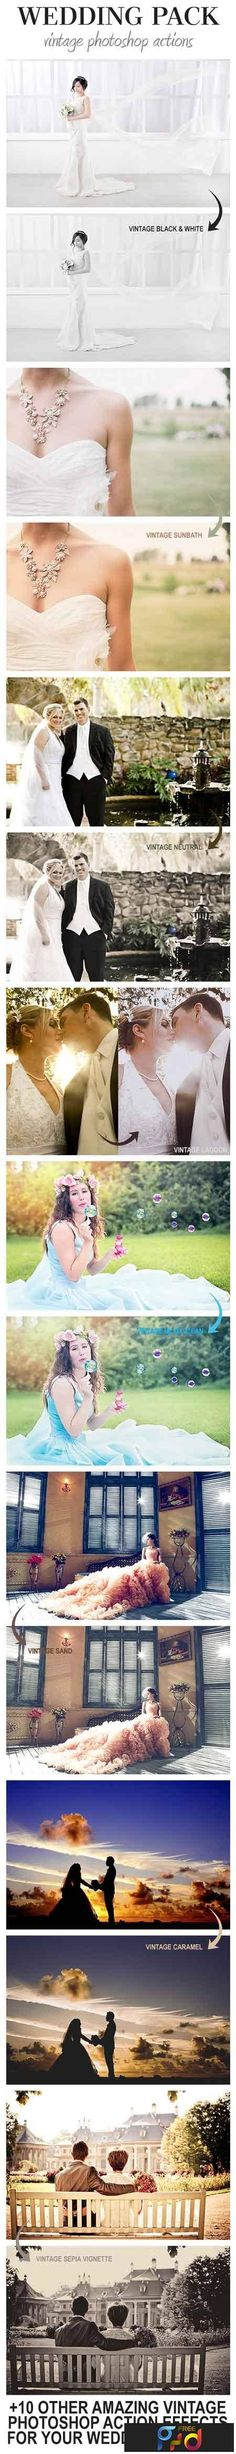 FreePsdVn.com_1703239_PHOTOSHOP_wedding_pack_vintage_photoshop_actions_19702270